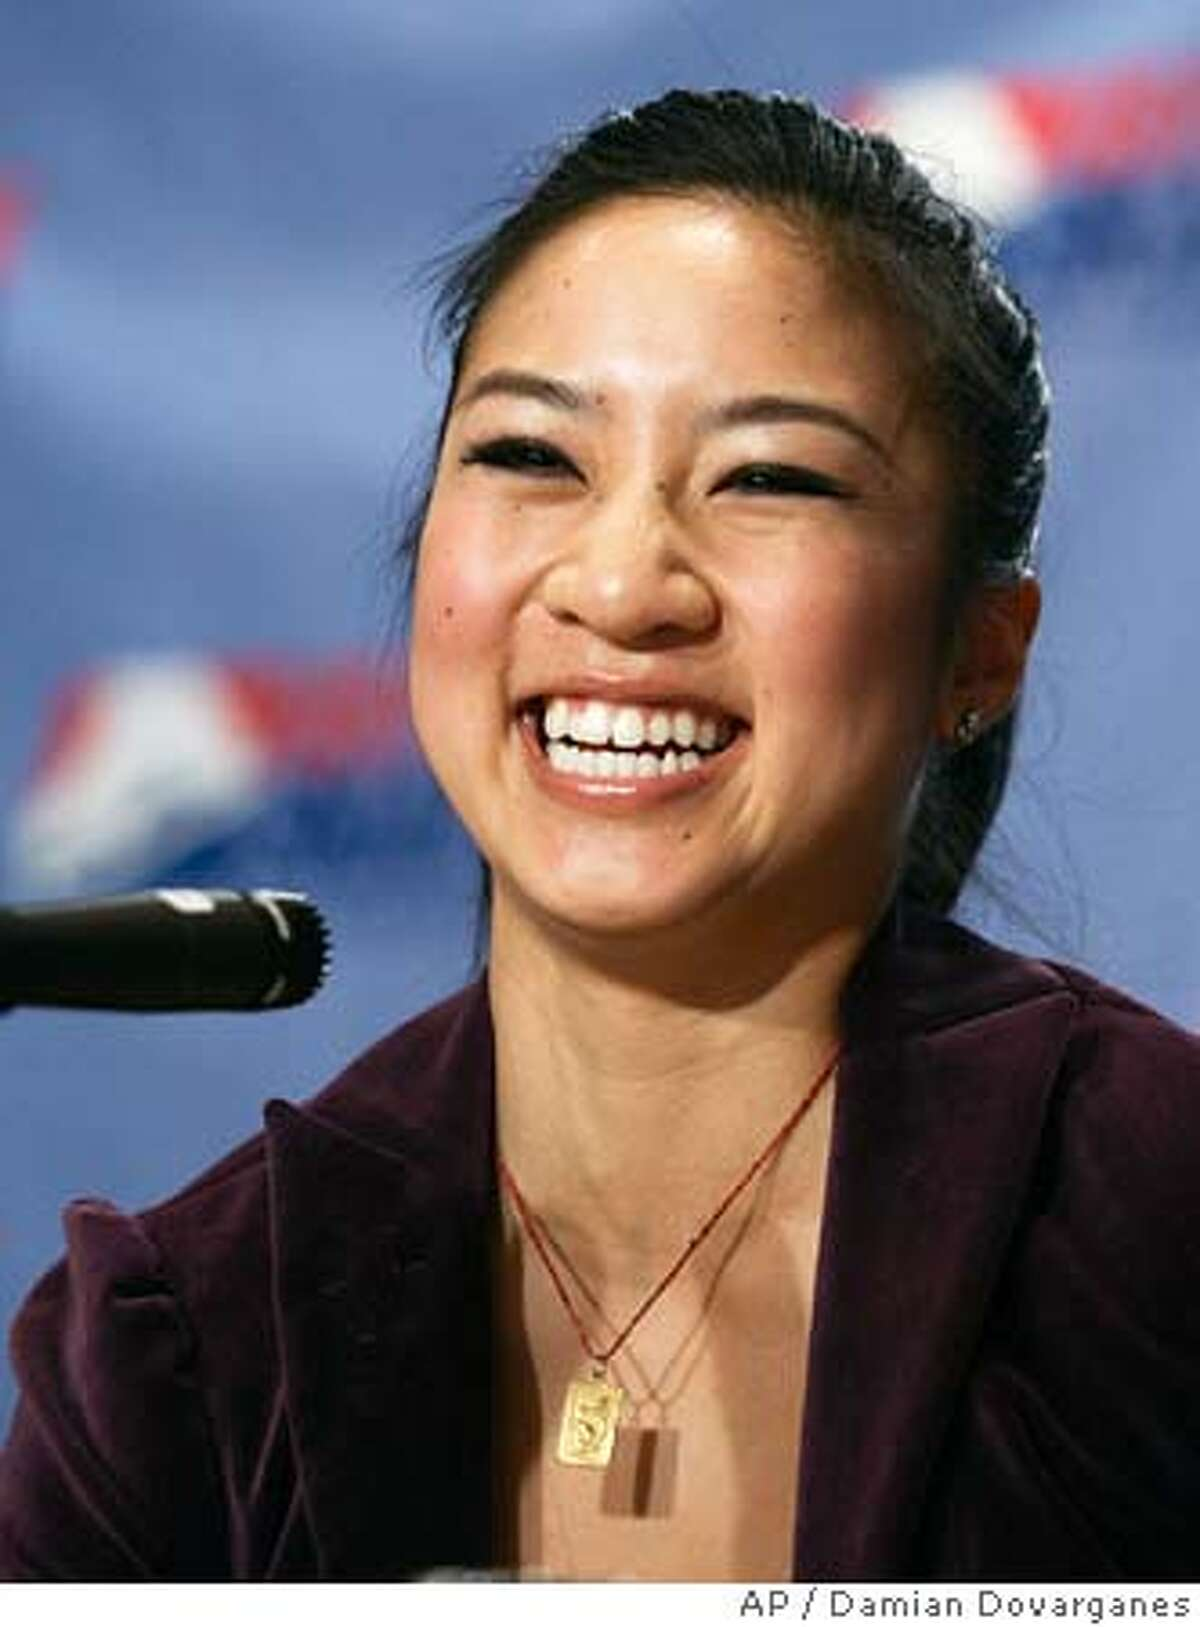 United States Olympic figure skater Michelle Kwan smiles Friday, Jan. 27, 2006, after being confirmed to compete with the 2006 U.S. Figure Skating Olympic team, during a news conference in Los Angeles. A five-person with the US Figure Skating monitoring committee watched earlier Friday morning as Kwan did her short and long programs on her home ice in Artesia, Calif. (AP Photo/Damian Dovarganes)